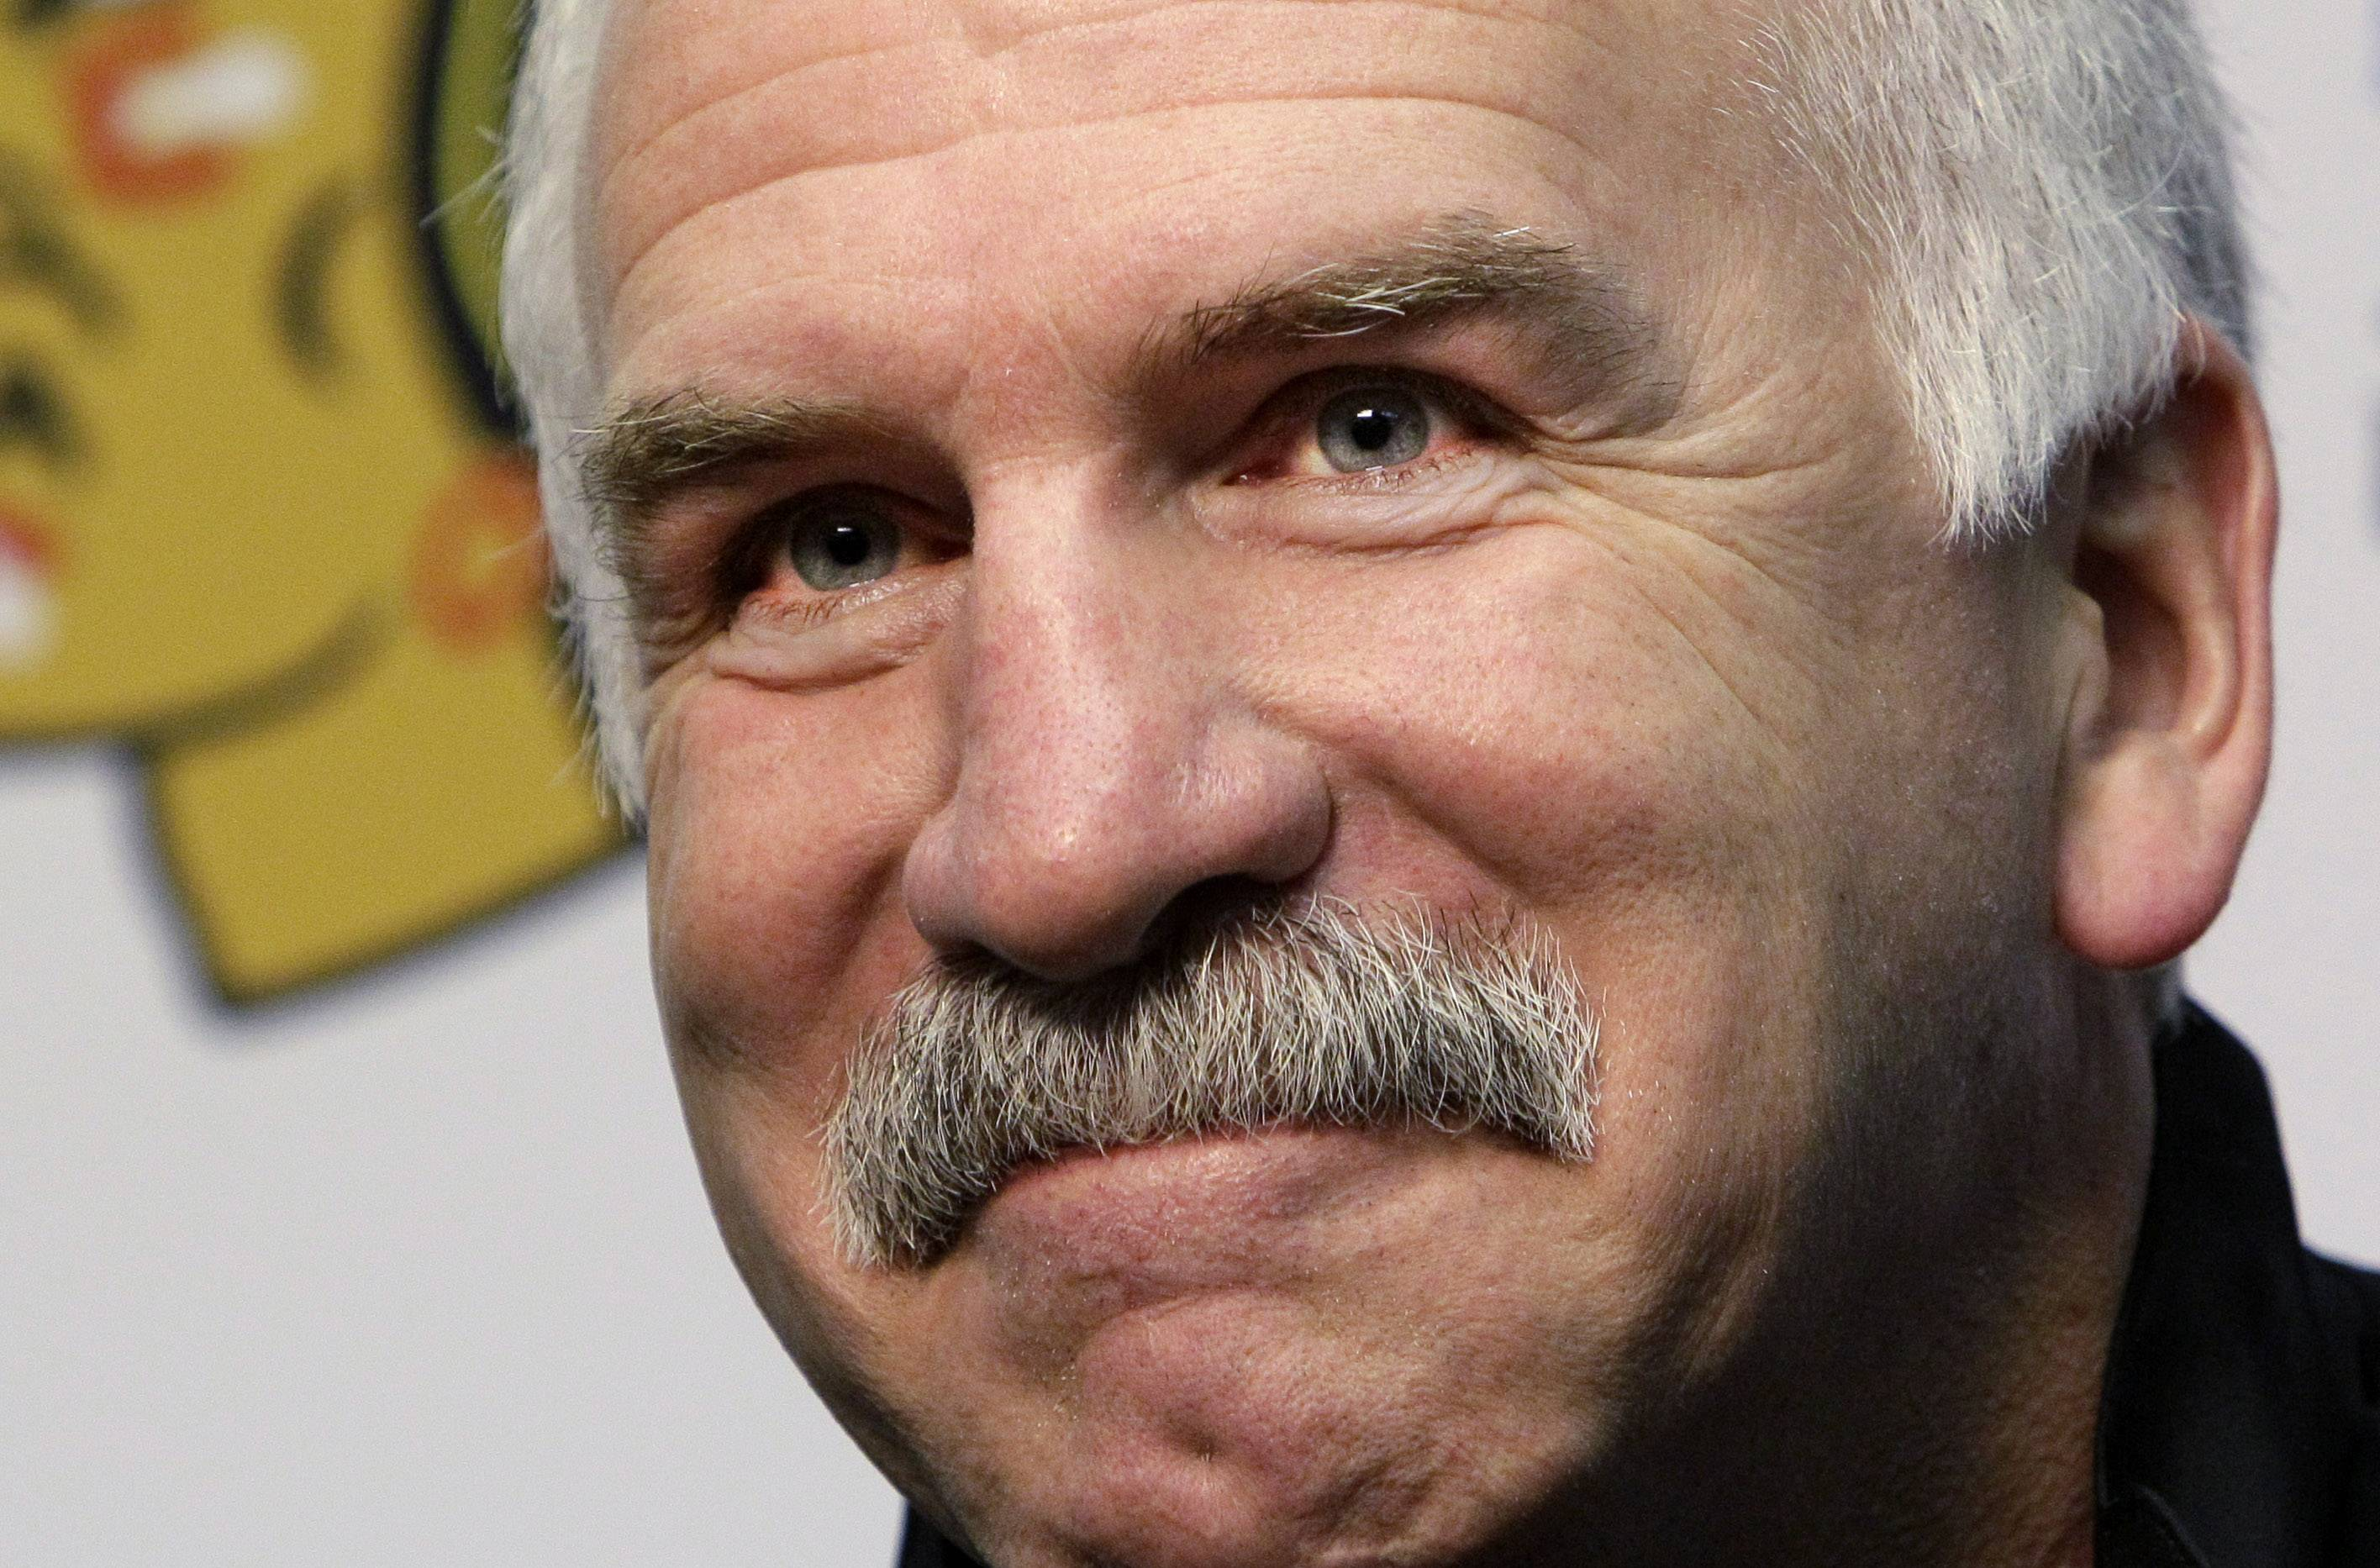 Joel Quenneville, who was fired Tuesday, left an indelible mark on the Blackhawks organization.